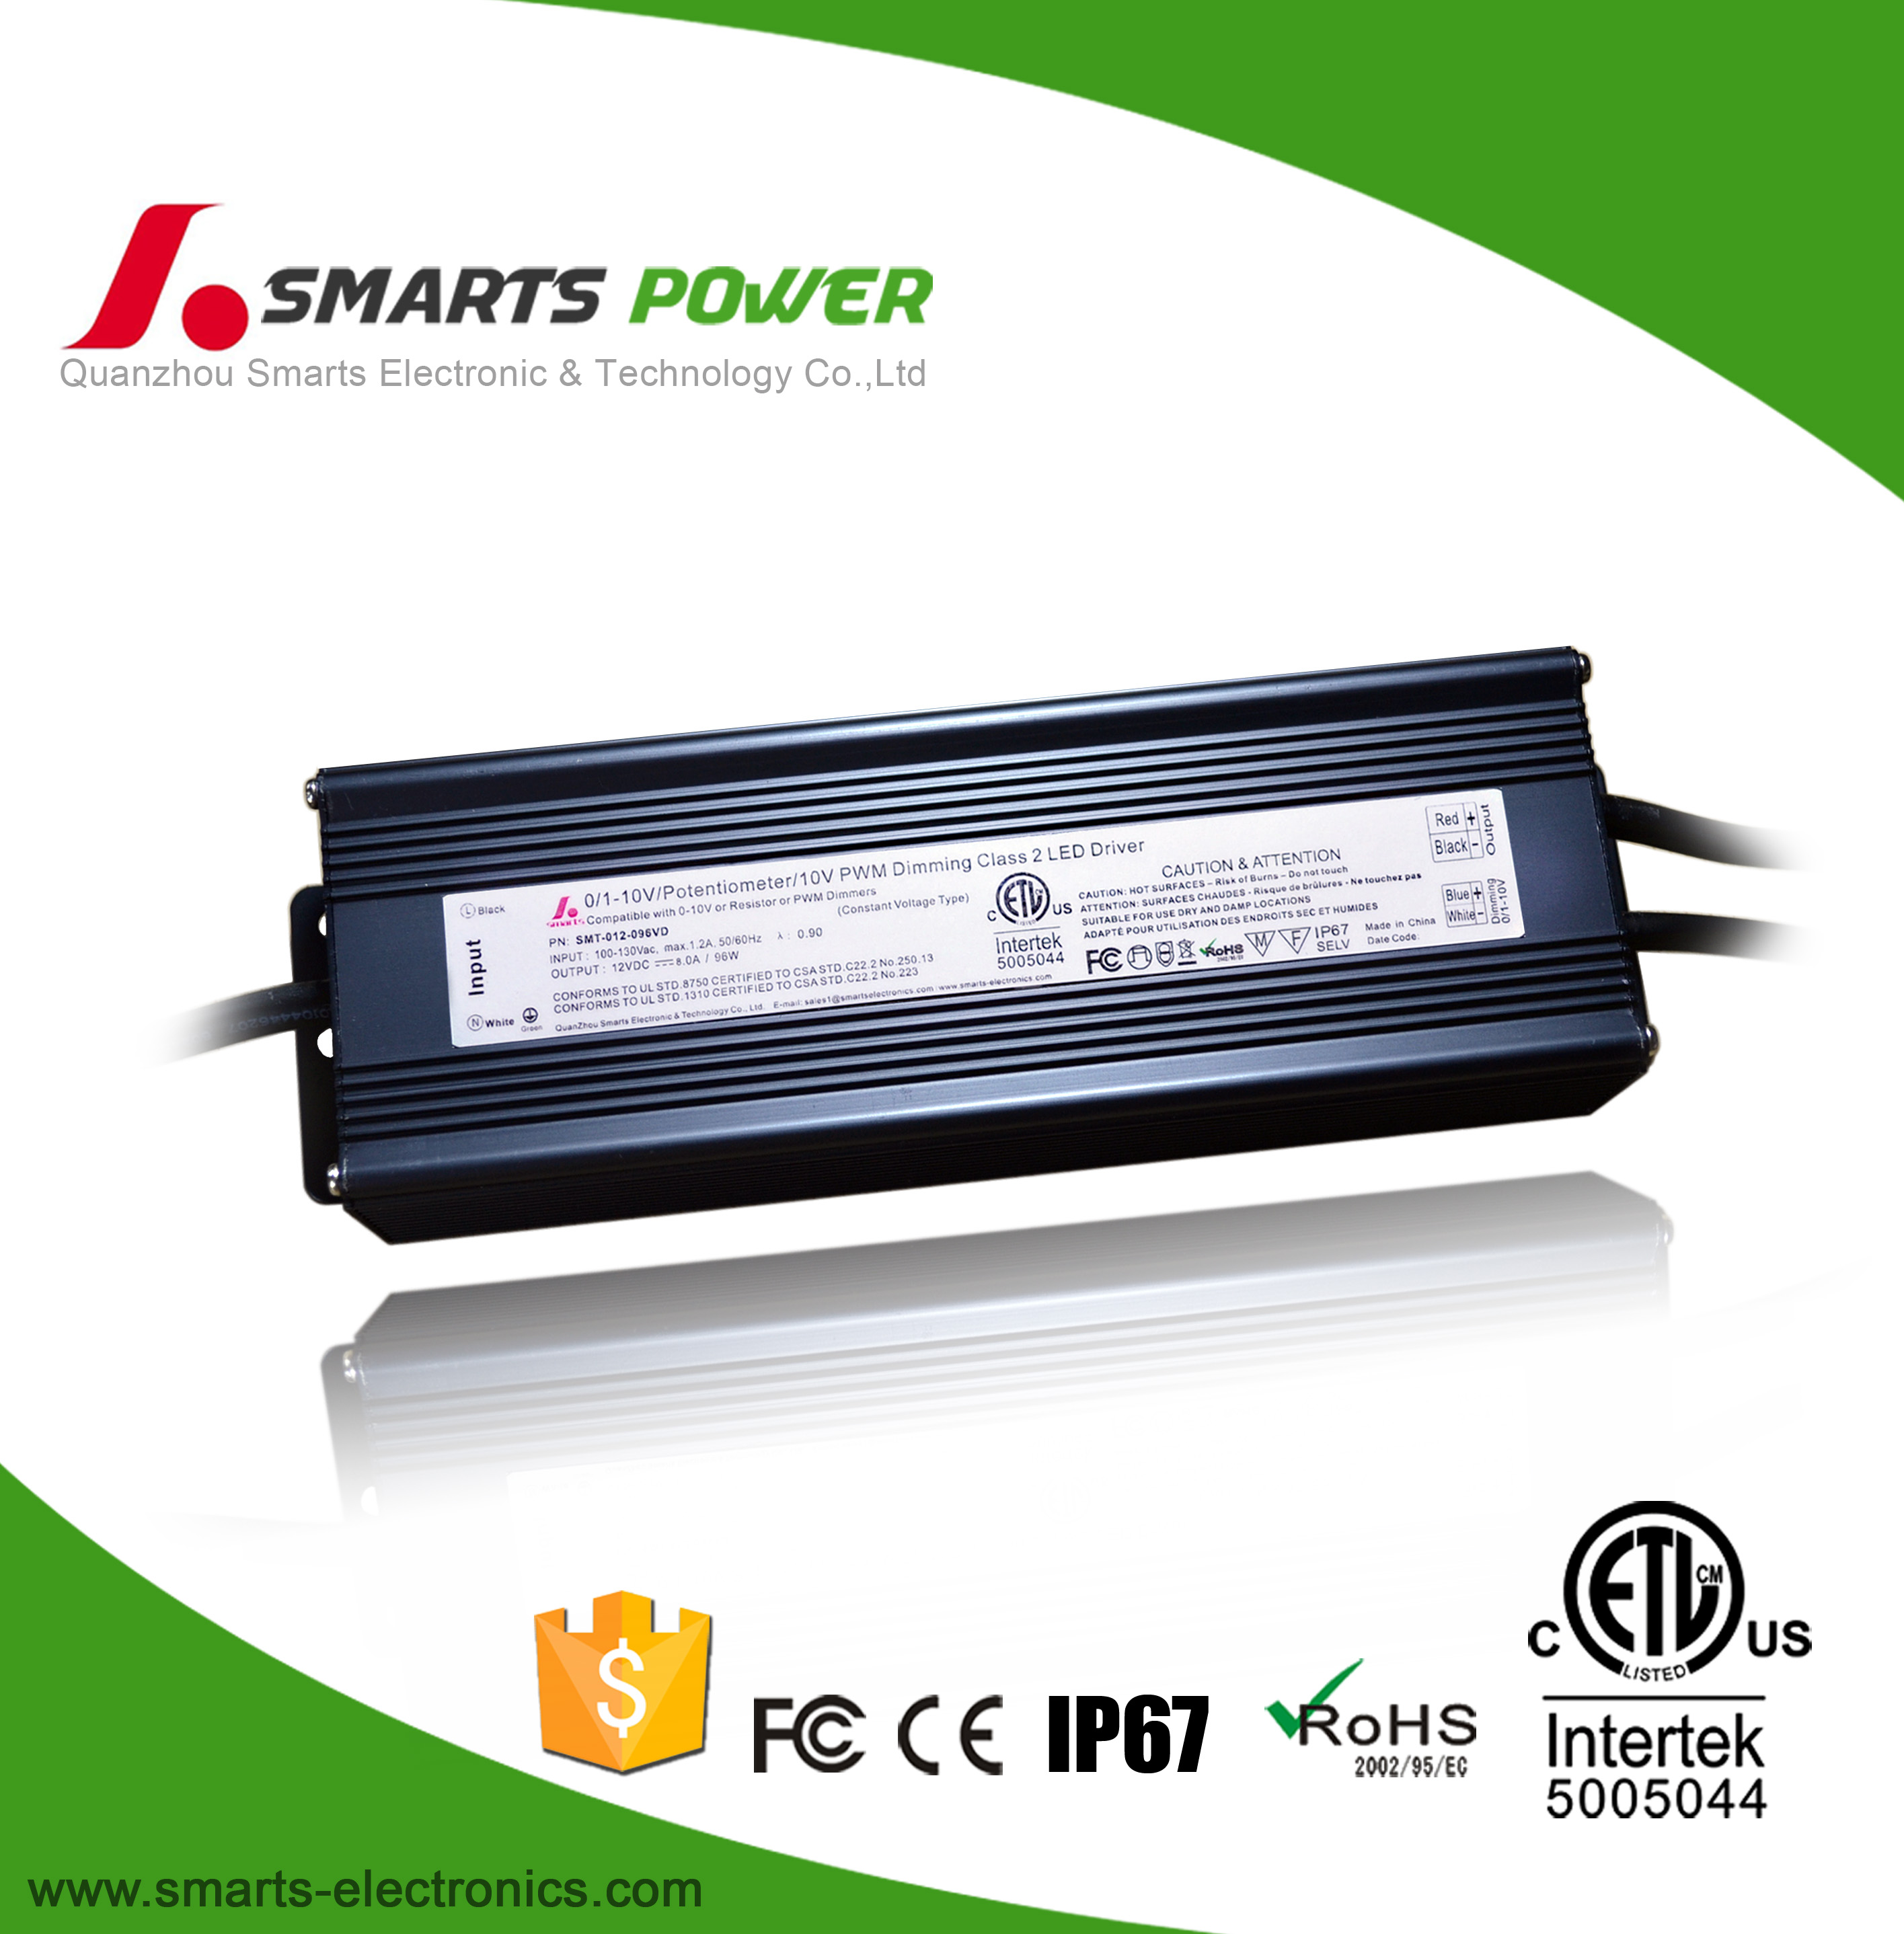 What is the differences of Smarts' 0-10v led driver from other vendors